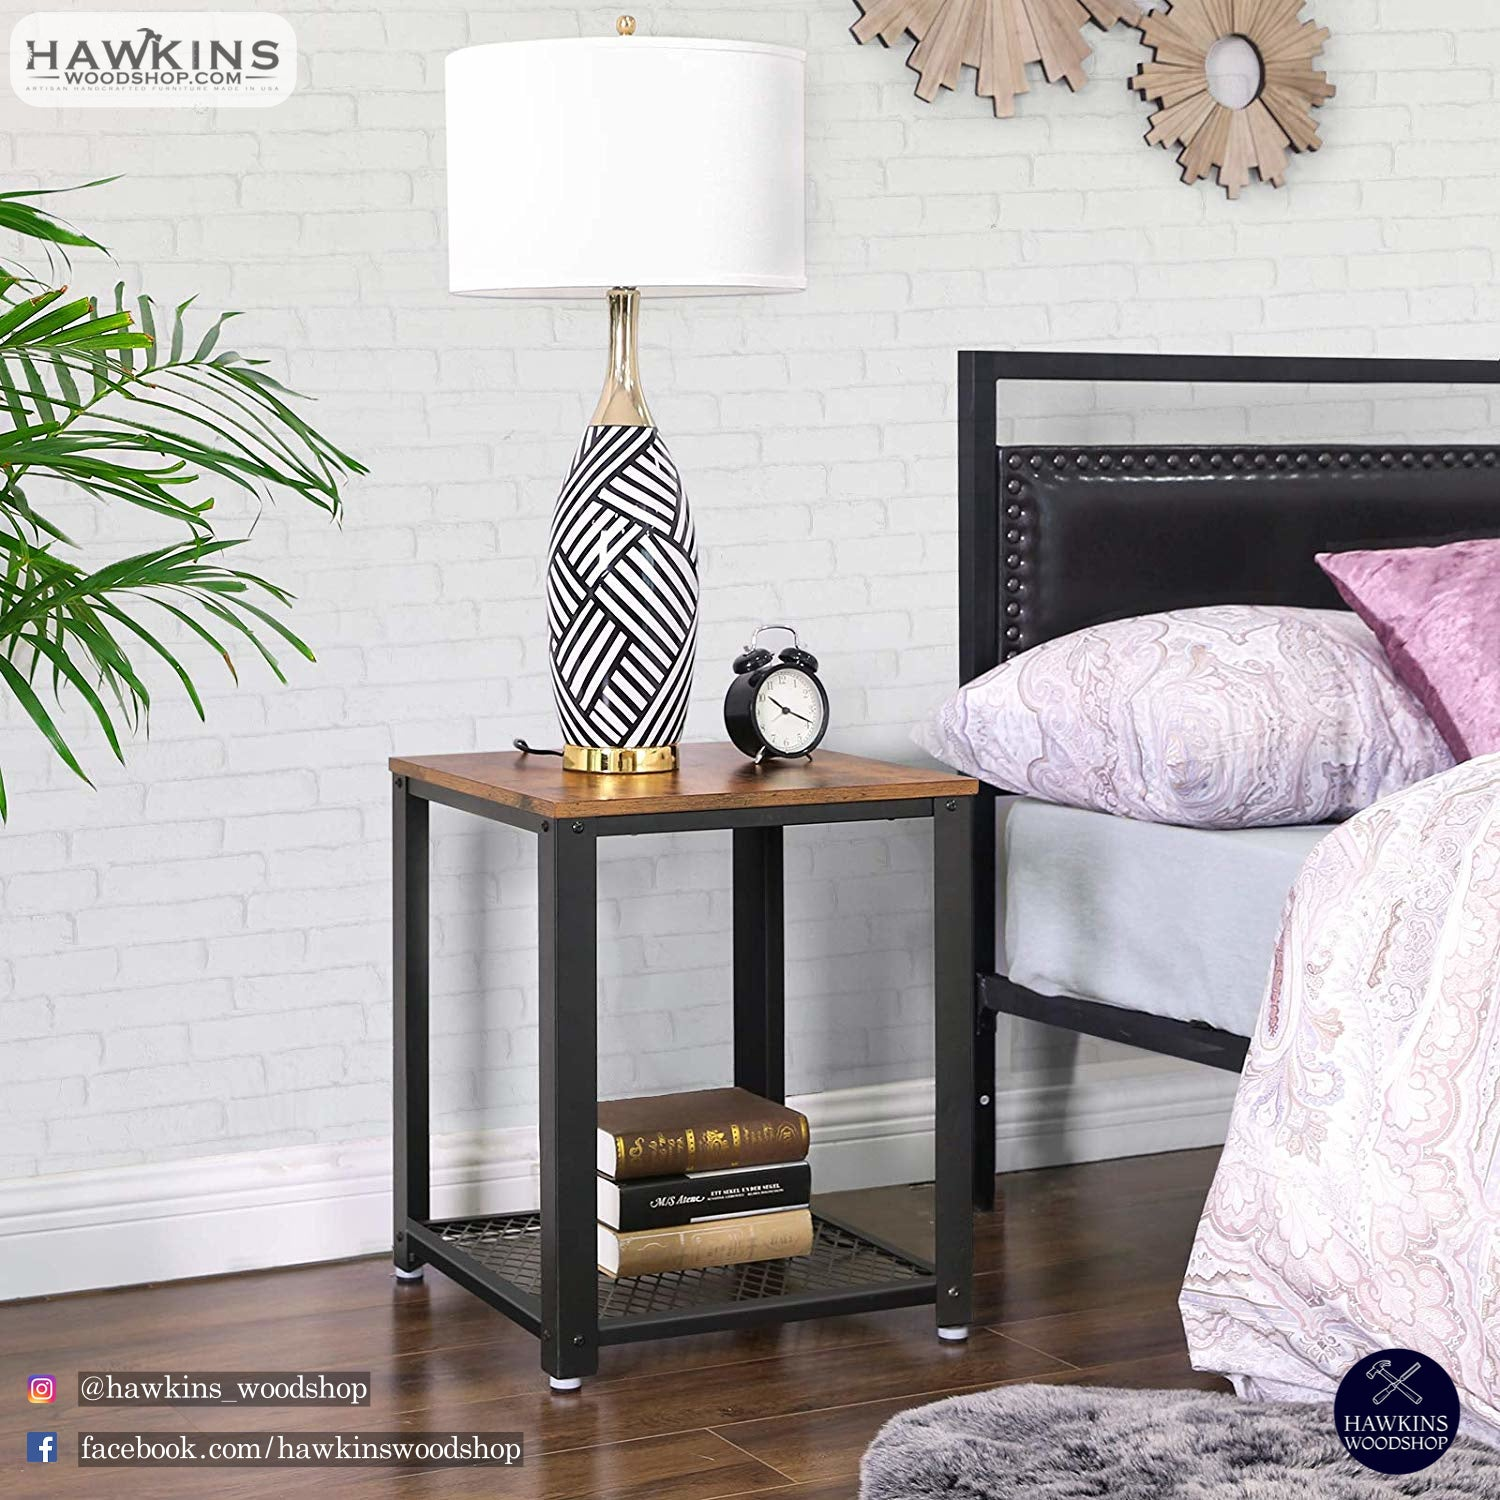 Shop hawkinswoodshop.com for discounted solid wood & metal modern, traditional, contemporary, custom & farmhouse furniture including our Ryan Industrial End Table Nightstand. Ask about our free nationwide freight delivery or assembly services today.